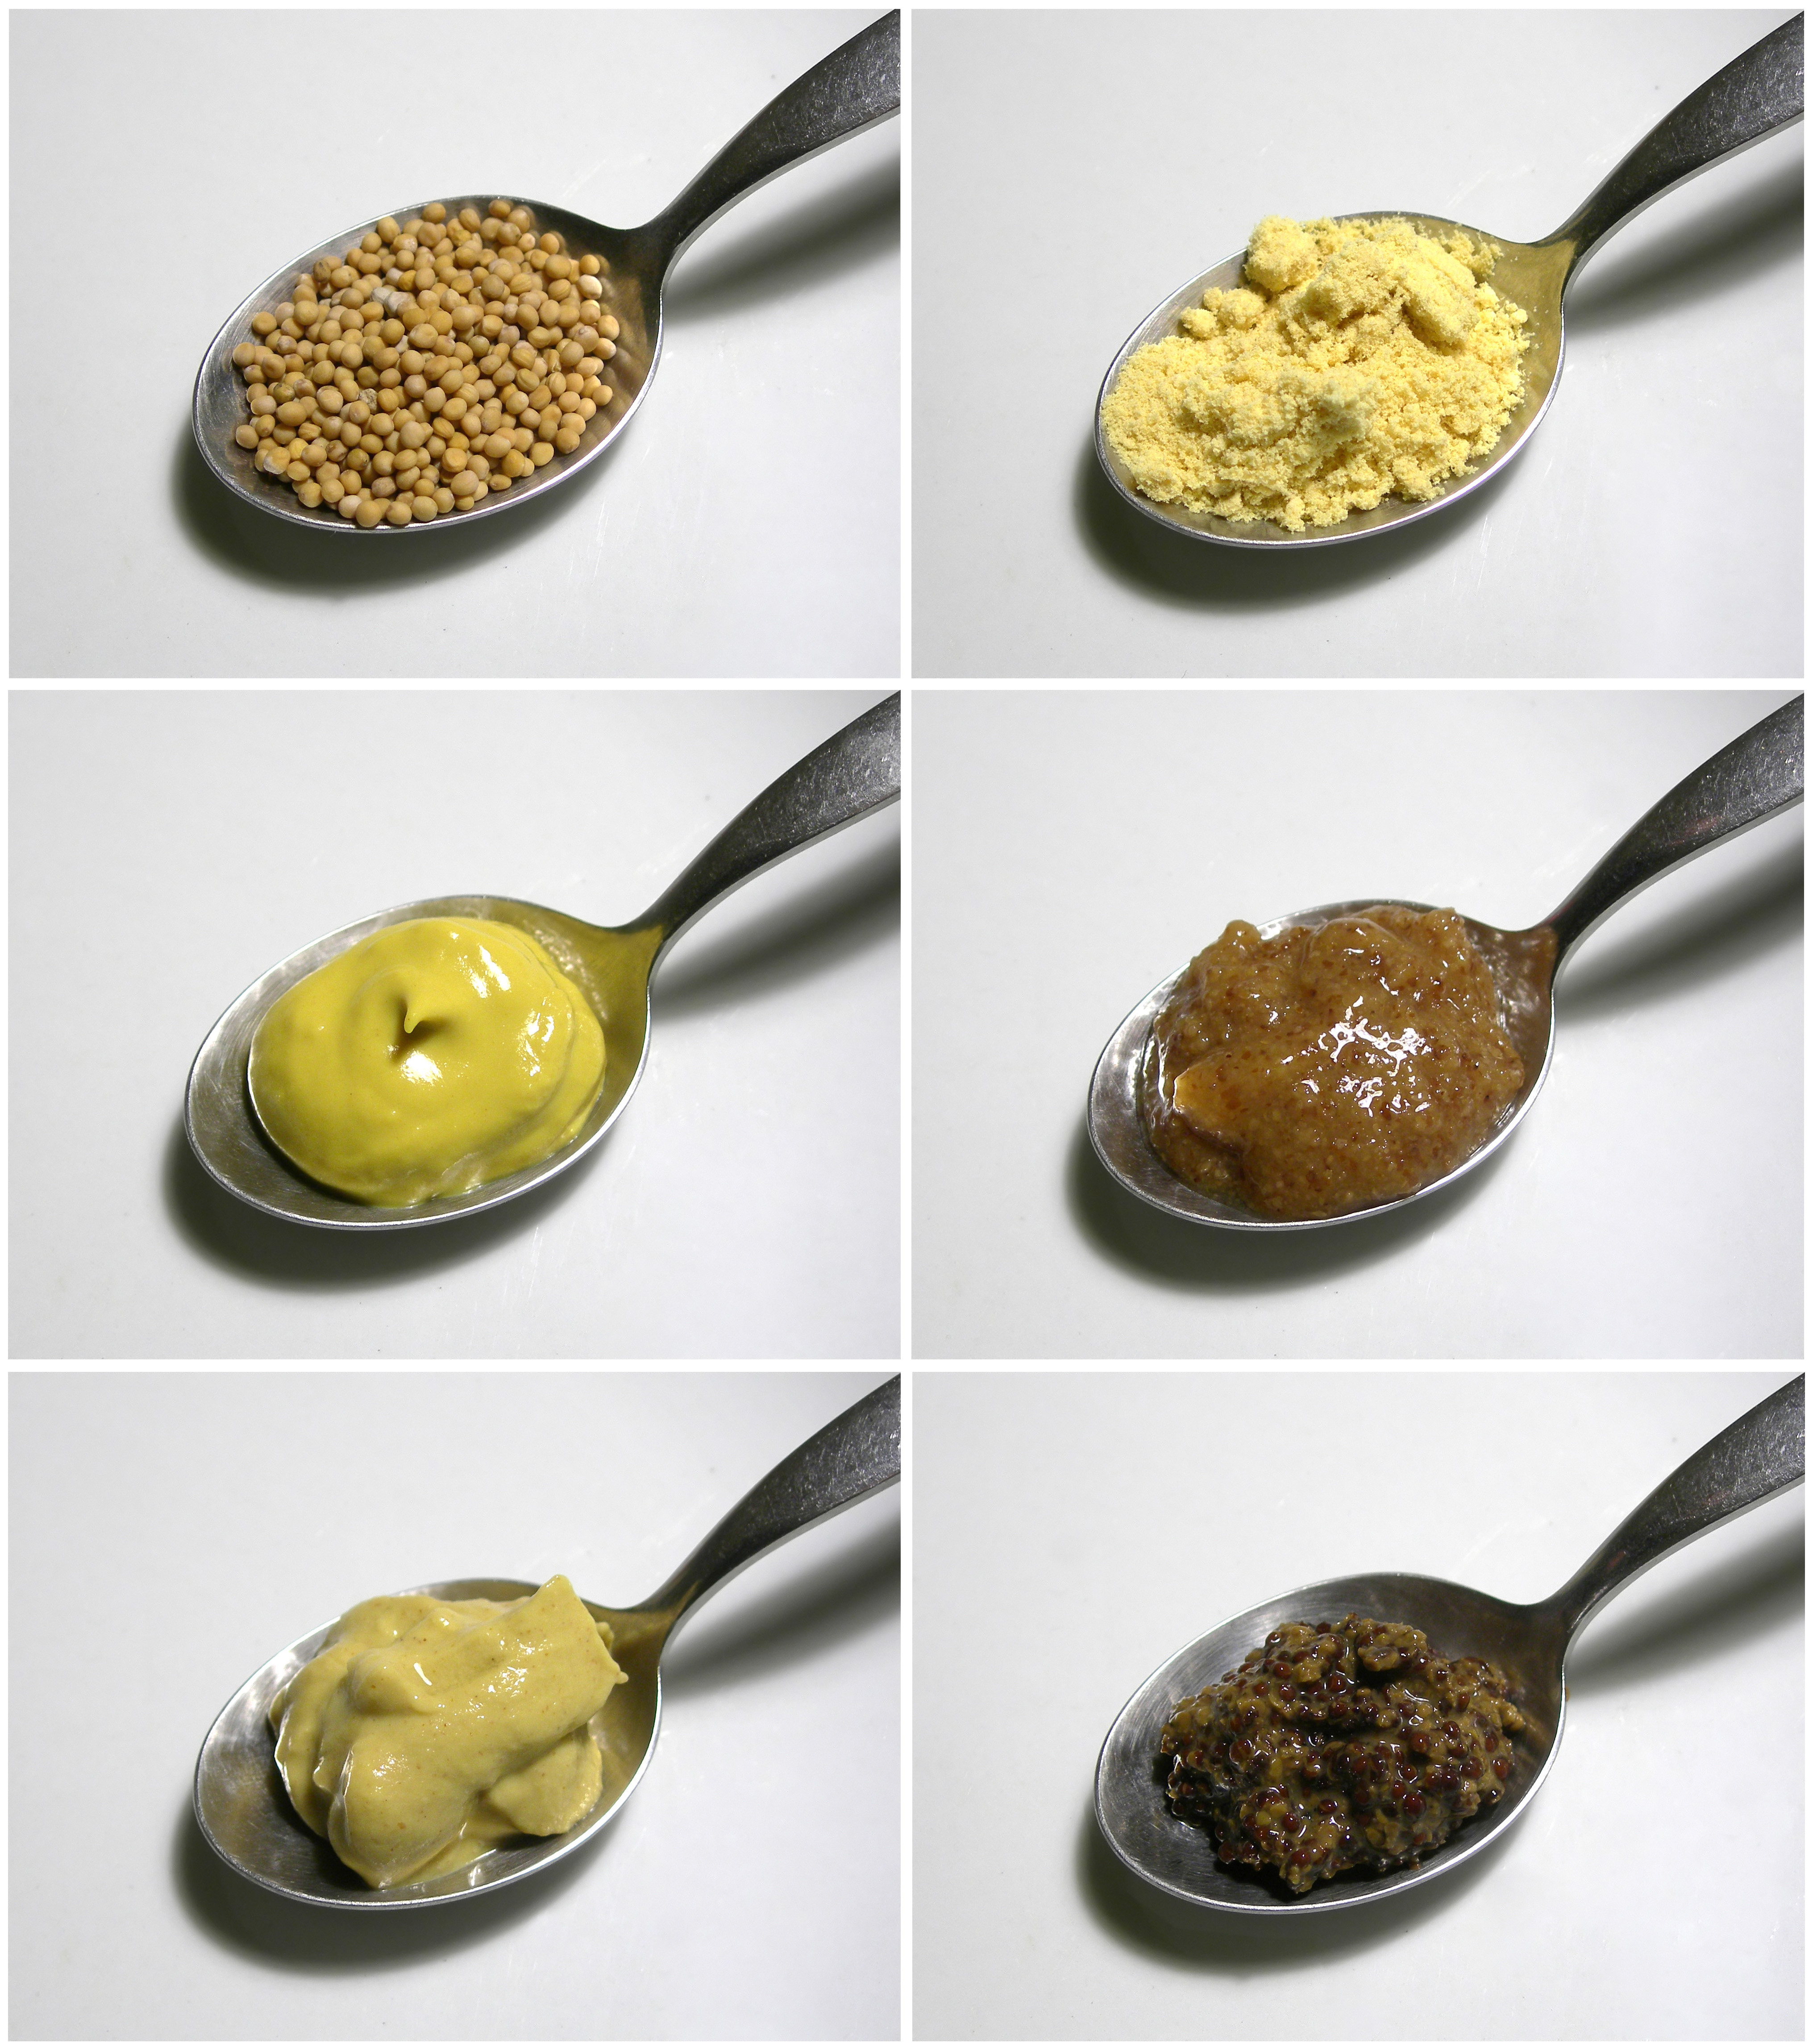 Mustard Seeds (top Left) May Be Ground (top Right) To Make Different Kinds  Of Mustard These Four Mustards Are: A Simple Table Mustard With Turmeric